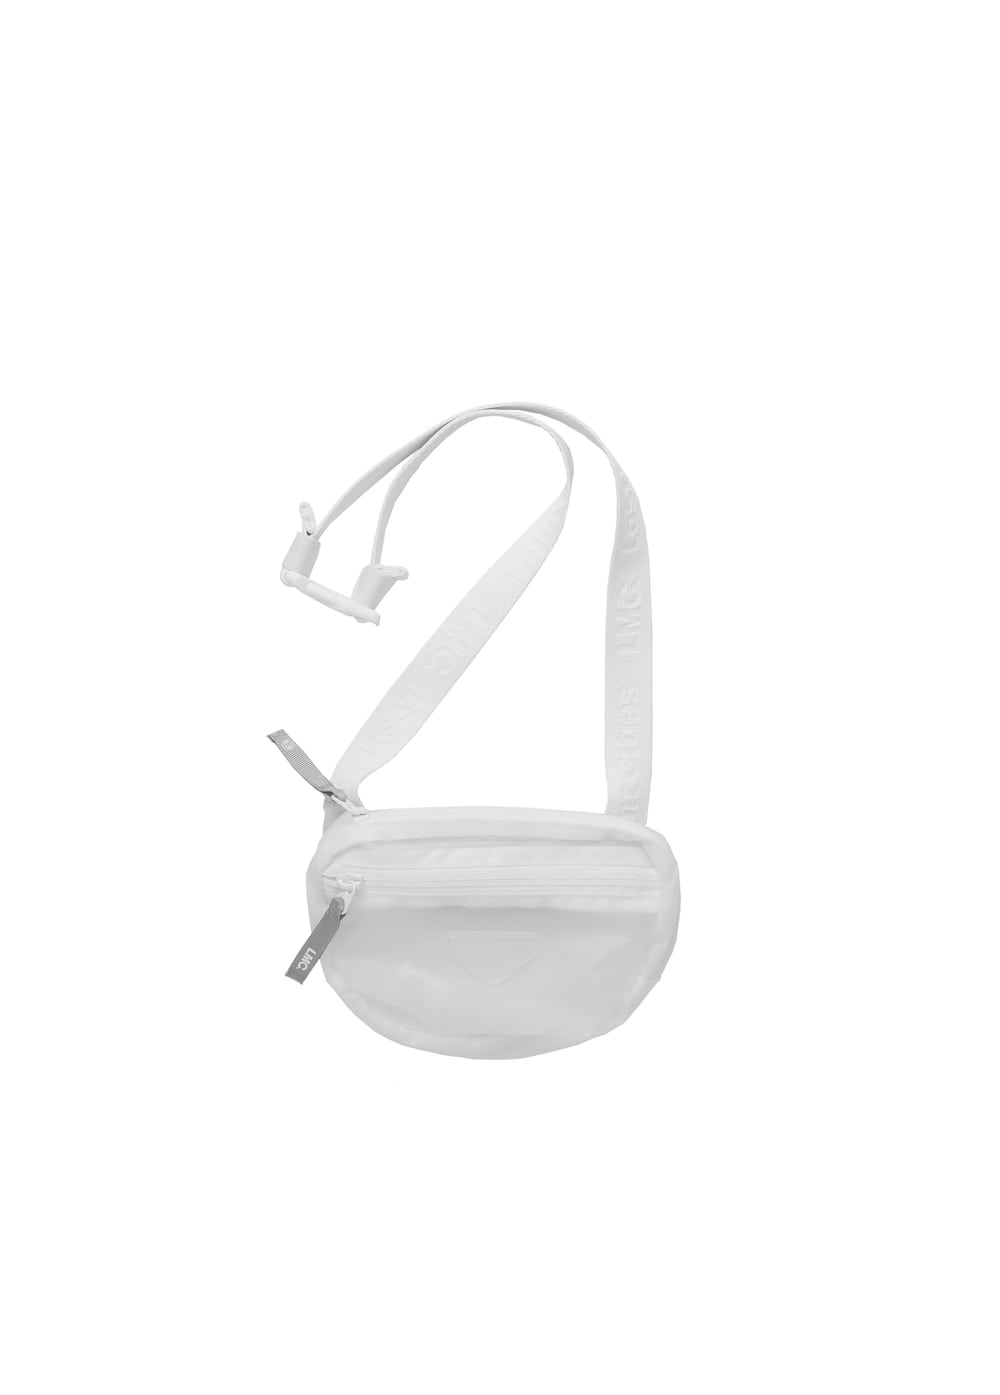 LMC MILANO MINI FANNY PACK clear